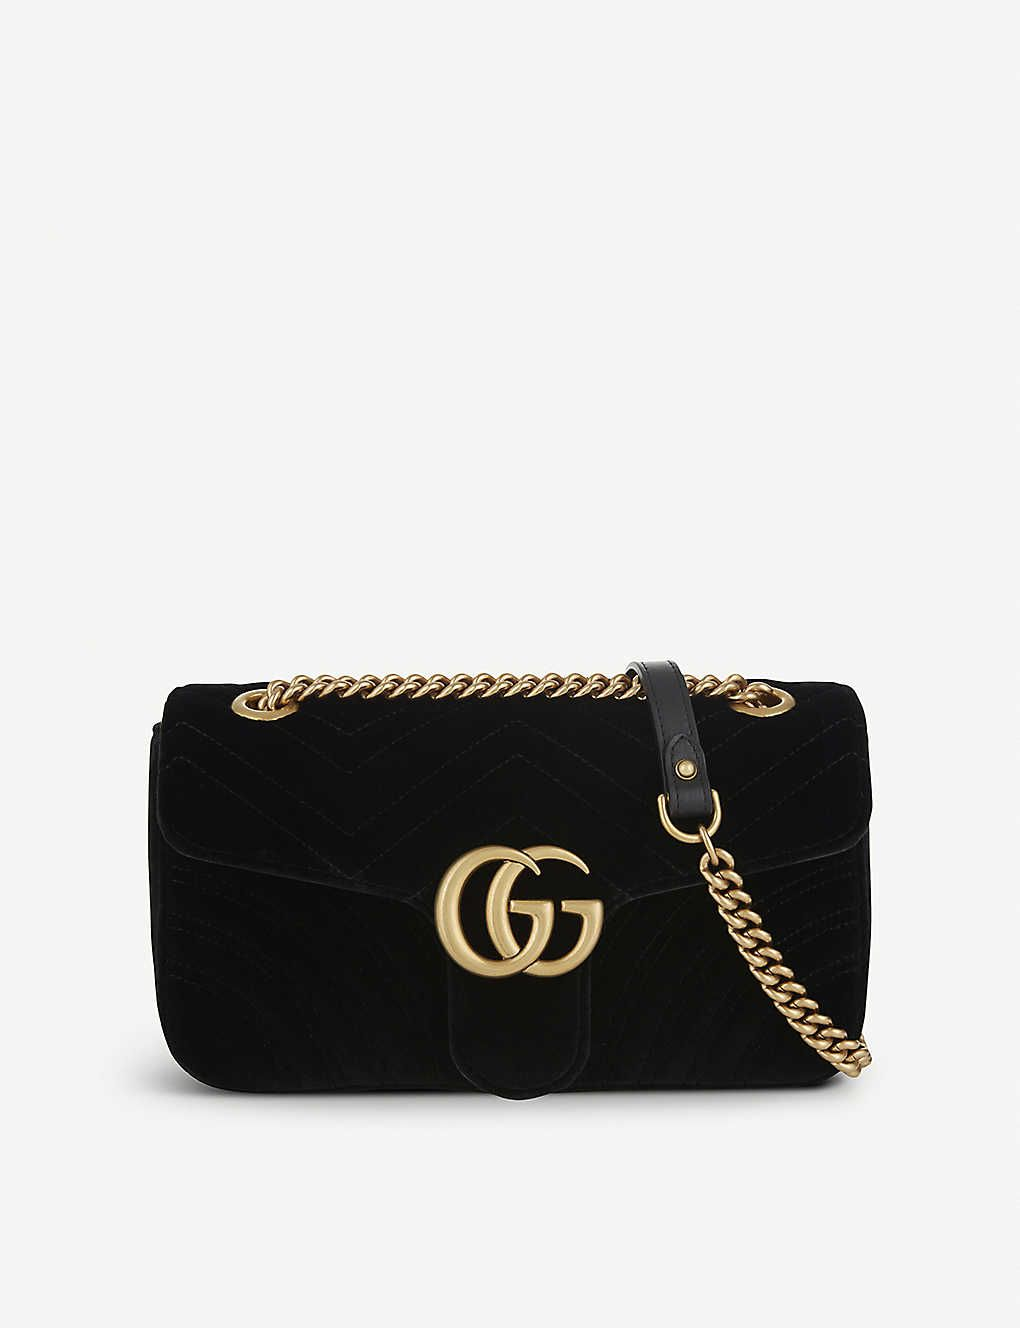 773b1bf9cd03 GUCCI Marmont small velvet shoulder bag в 2019 г. | Bags | Bags ...